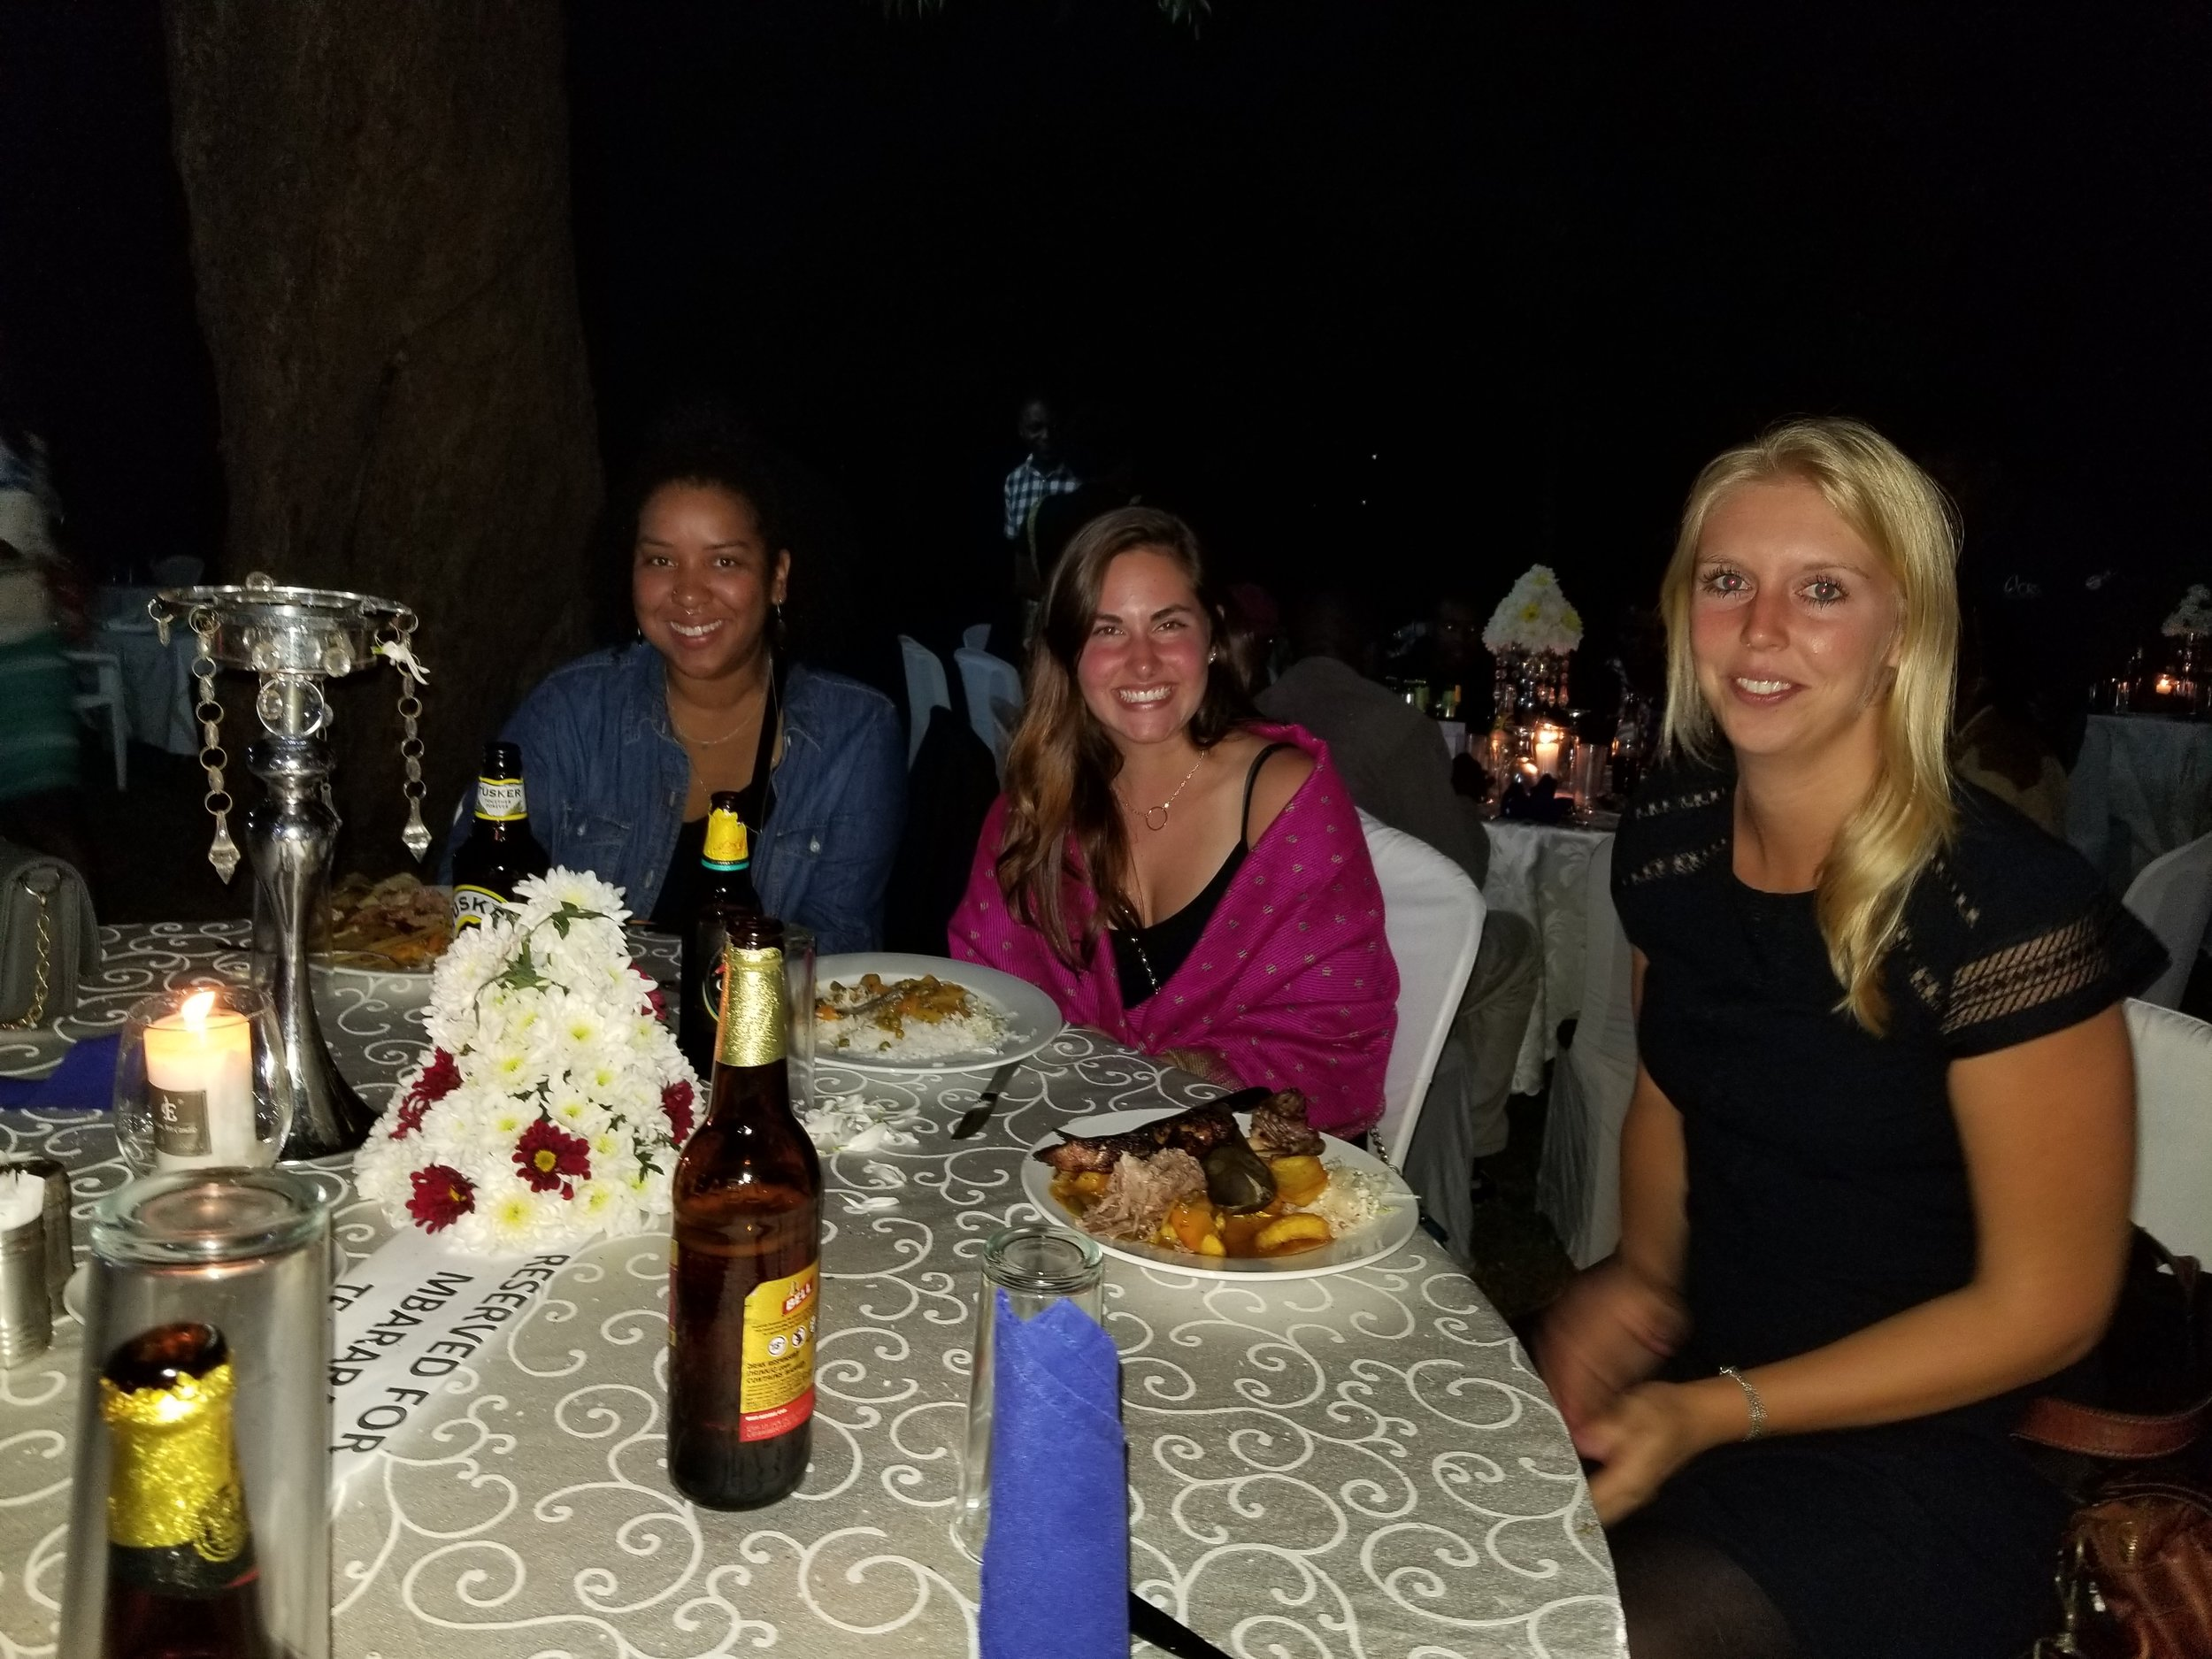 My girls (Alex, left, a Peace Corp Volunteer from Indiana. Roos, right, an EU volunteer from the Netherlands)